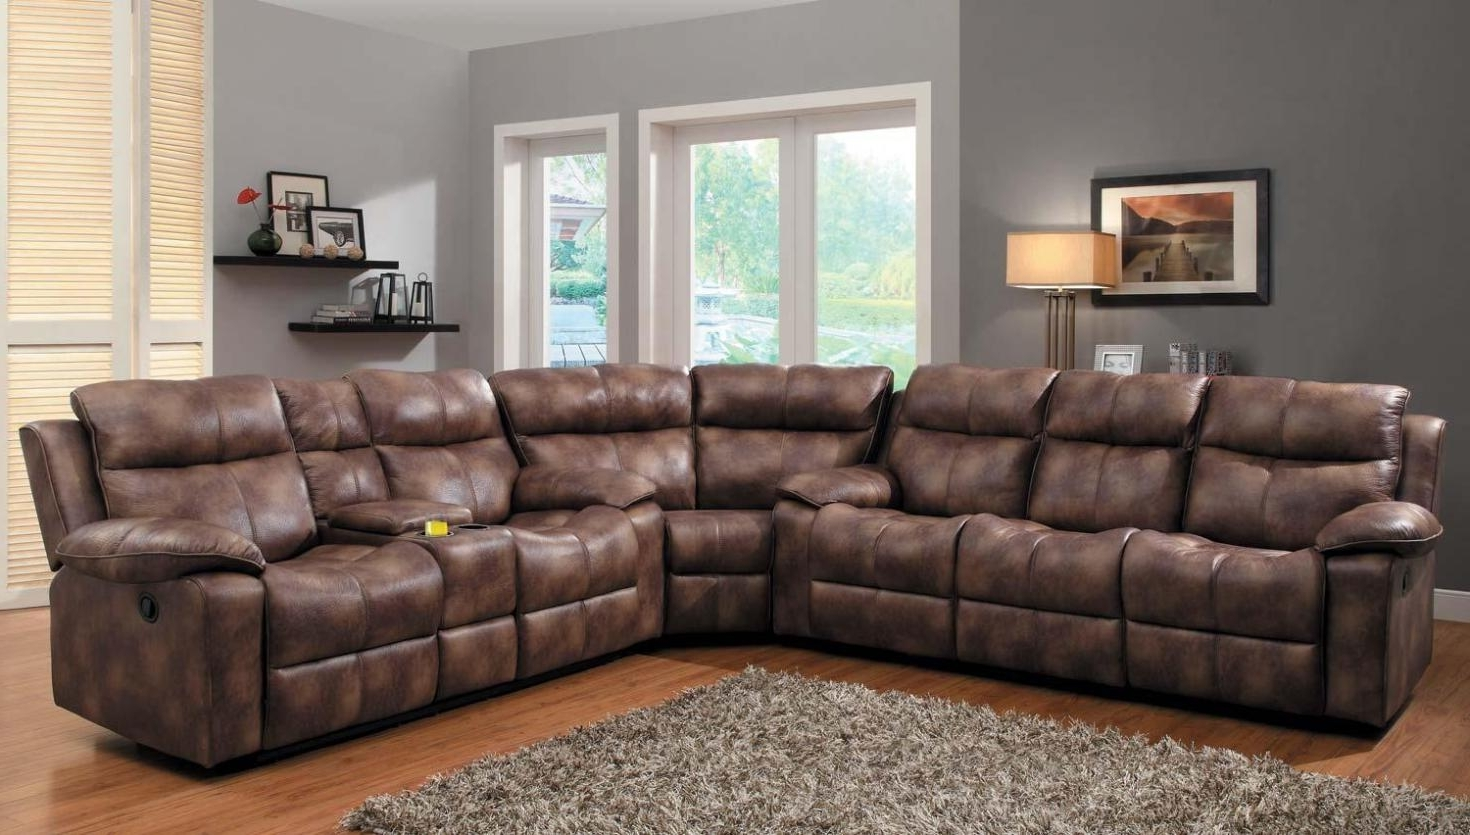 Most Recent Genuine Leather Sectional Sectionals Sofas Top Grain Leather Sofa Inside Clearance Sectional Sofas (View 12 of 20)